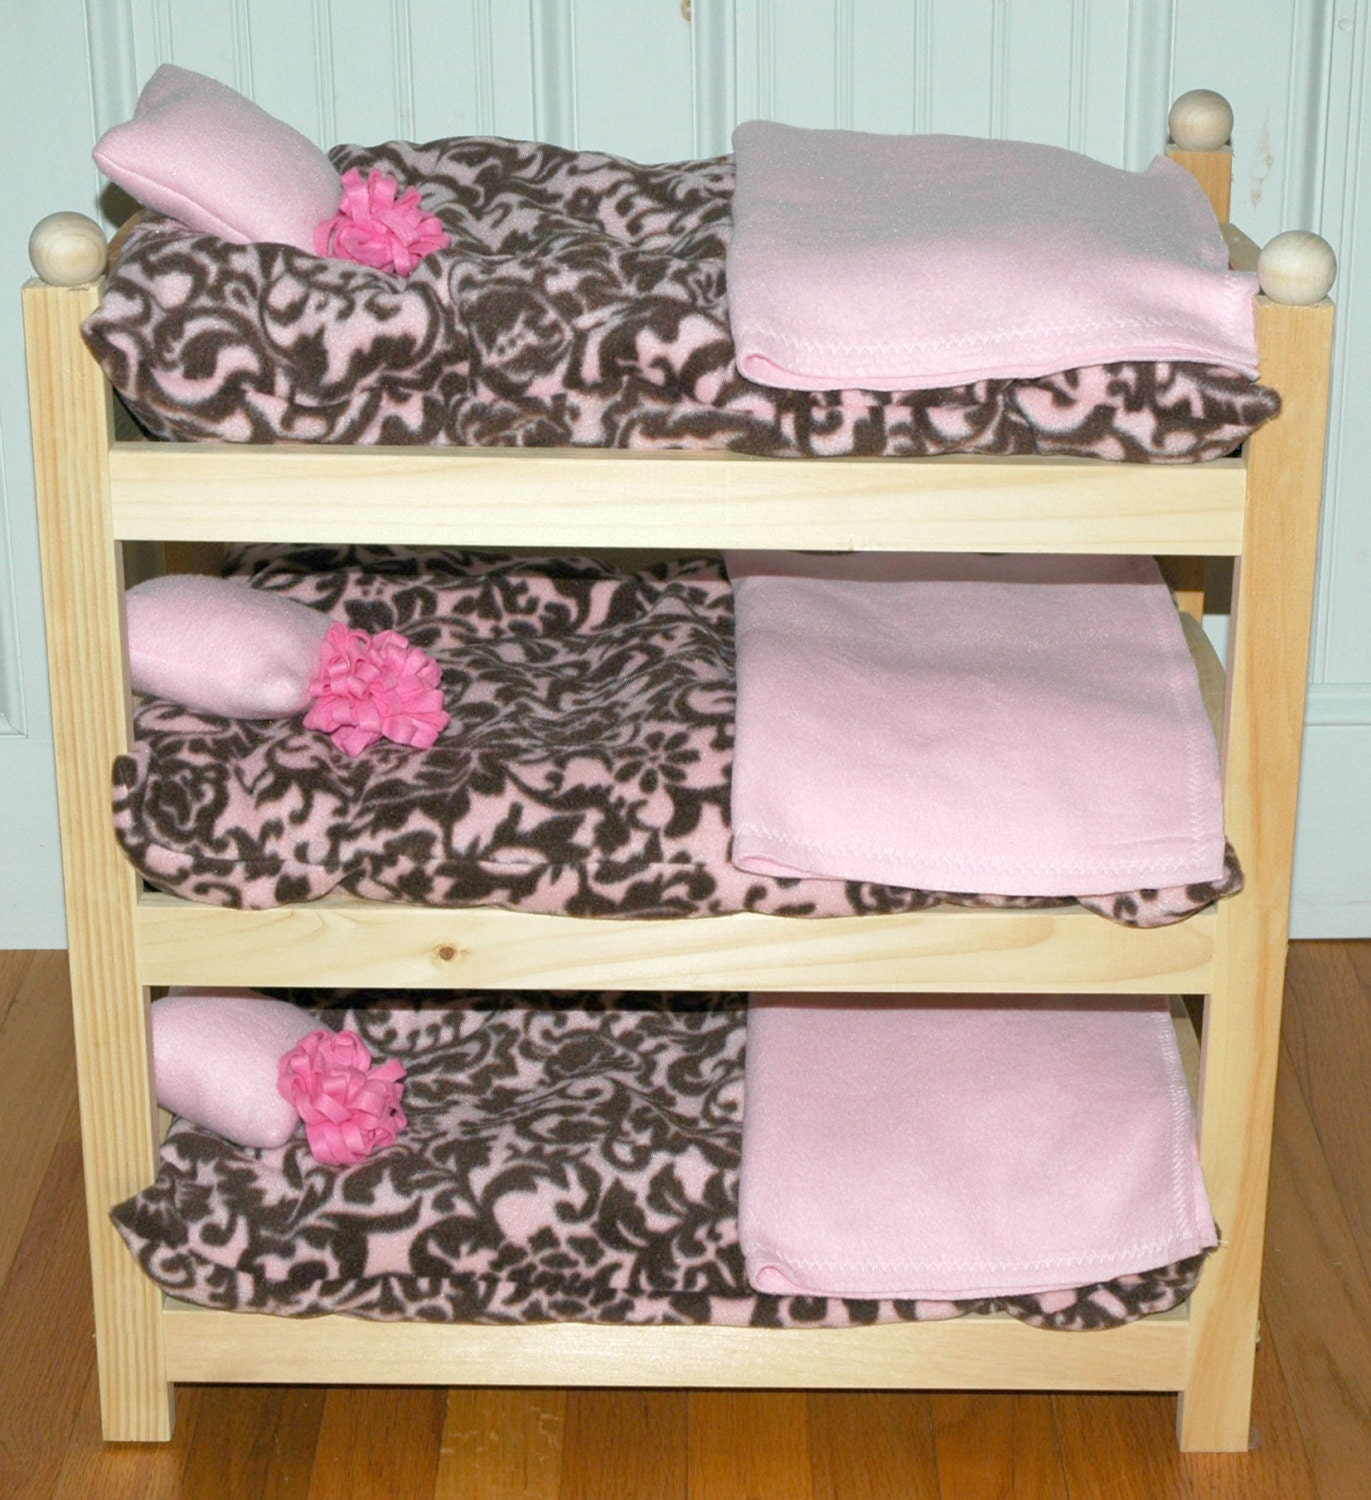 sale doll bed luxe damask triple bunk fits 18 inch dolls. Black Bedroom Furniture Sets. Home Design Ideas